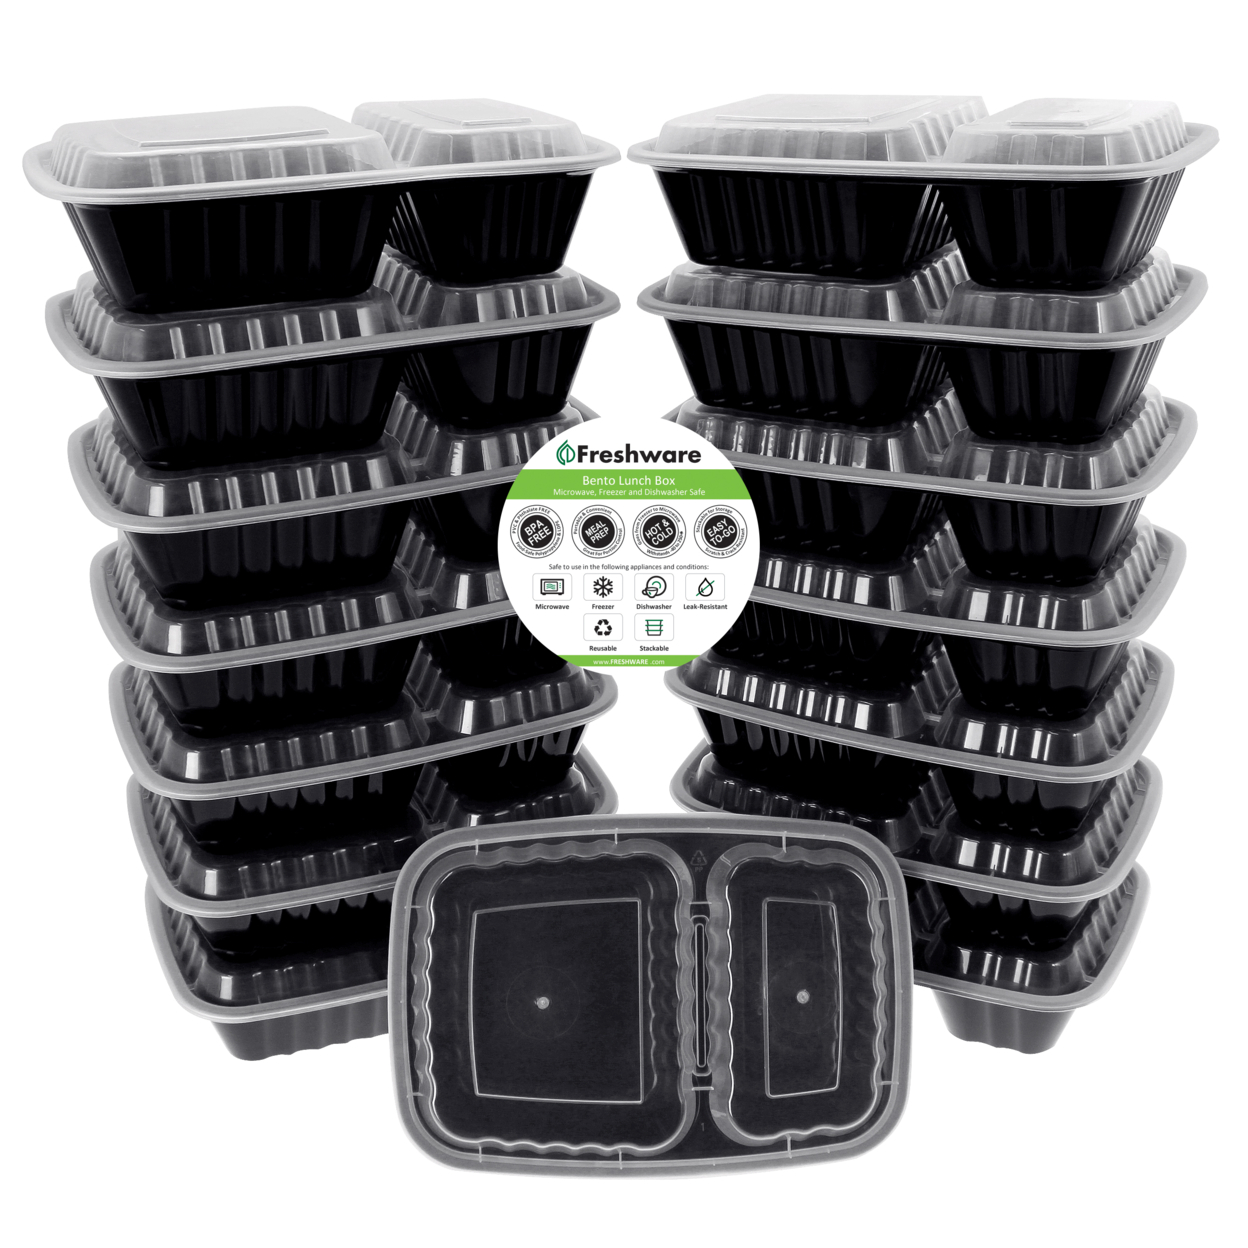 Freshware 15-pack 2 Compartment Bento Lunch Boxes With Lids Meal Prep, Portion Control, 21 Day Fix & Food Storage Containers (27oz)